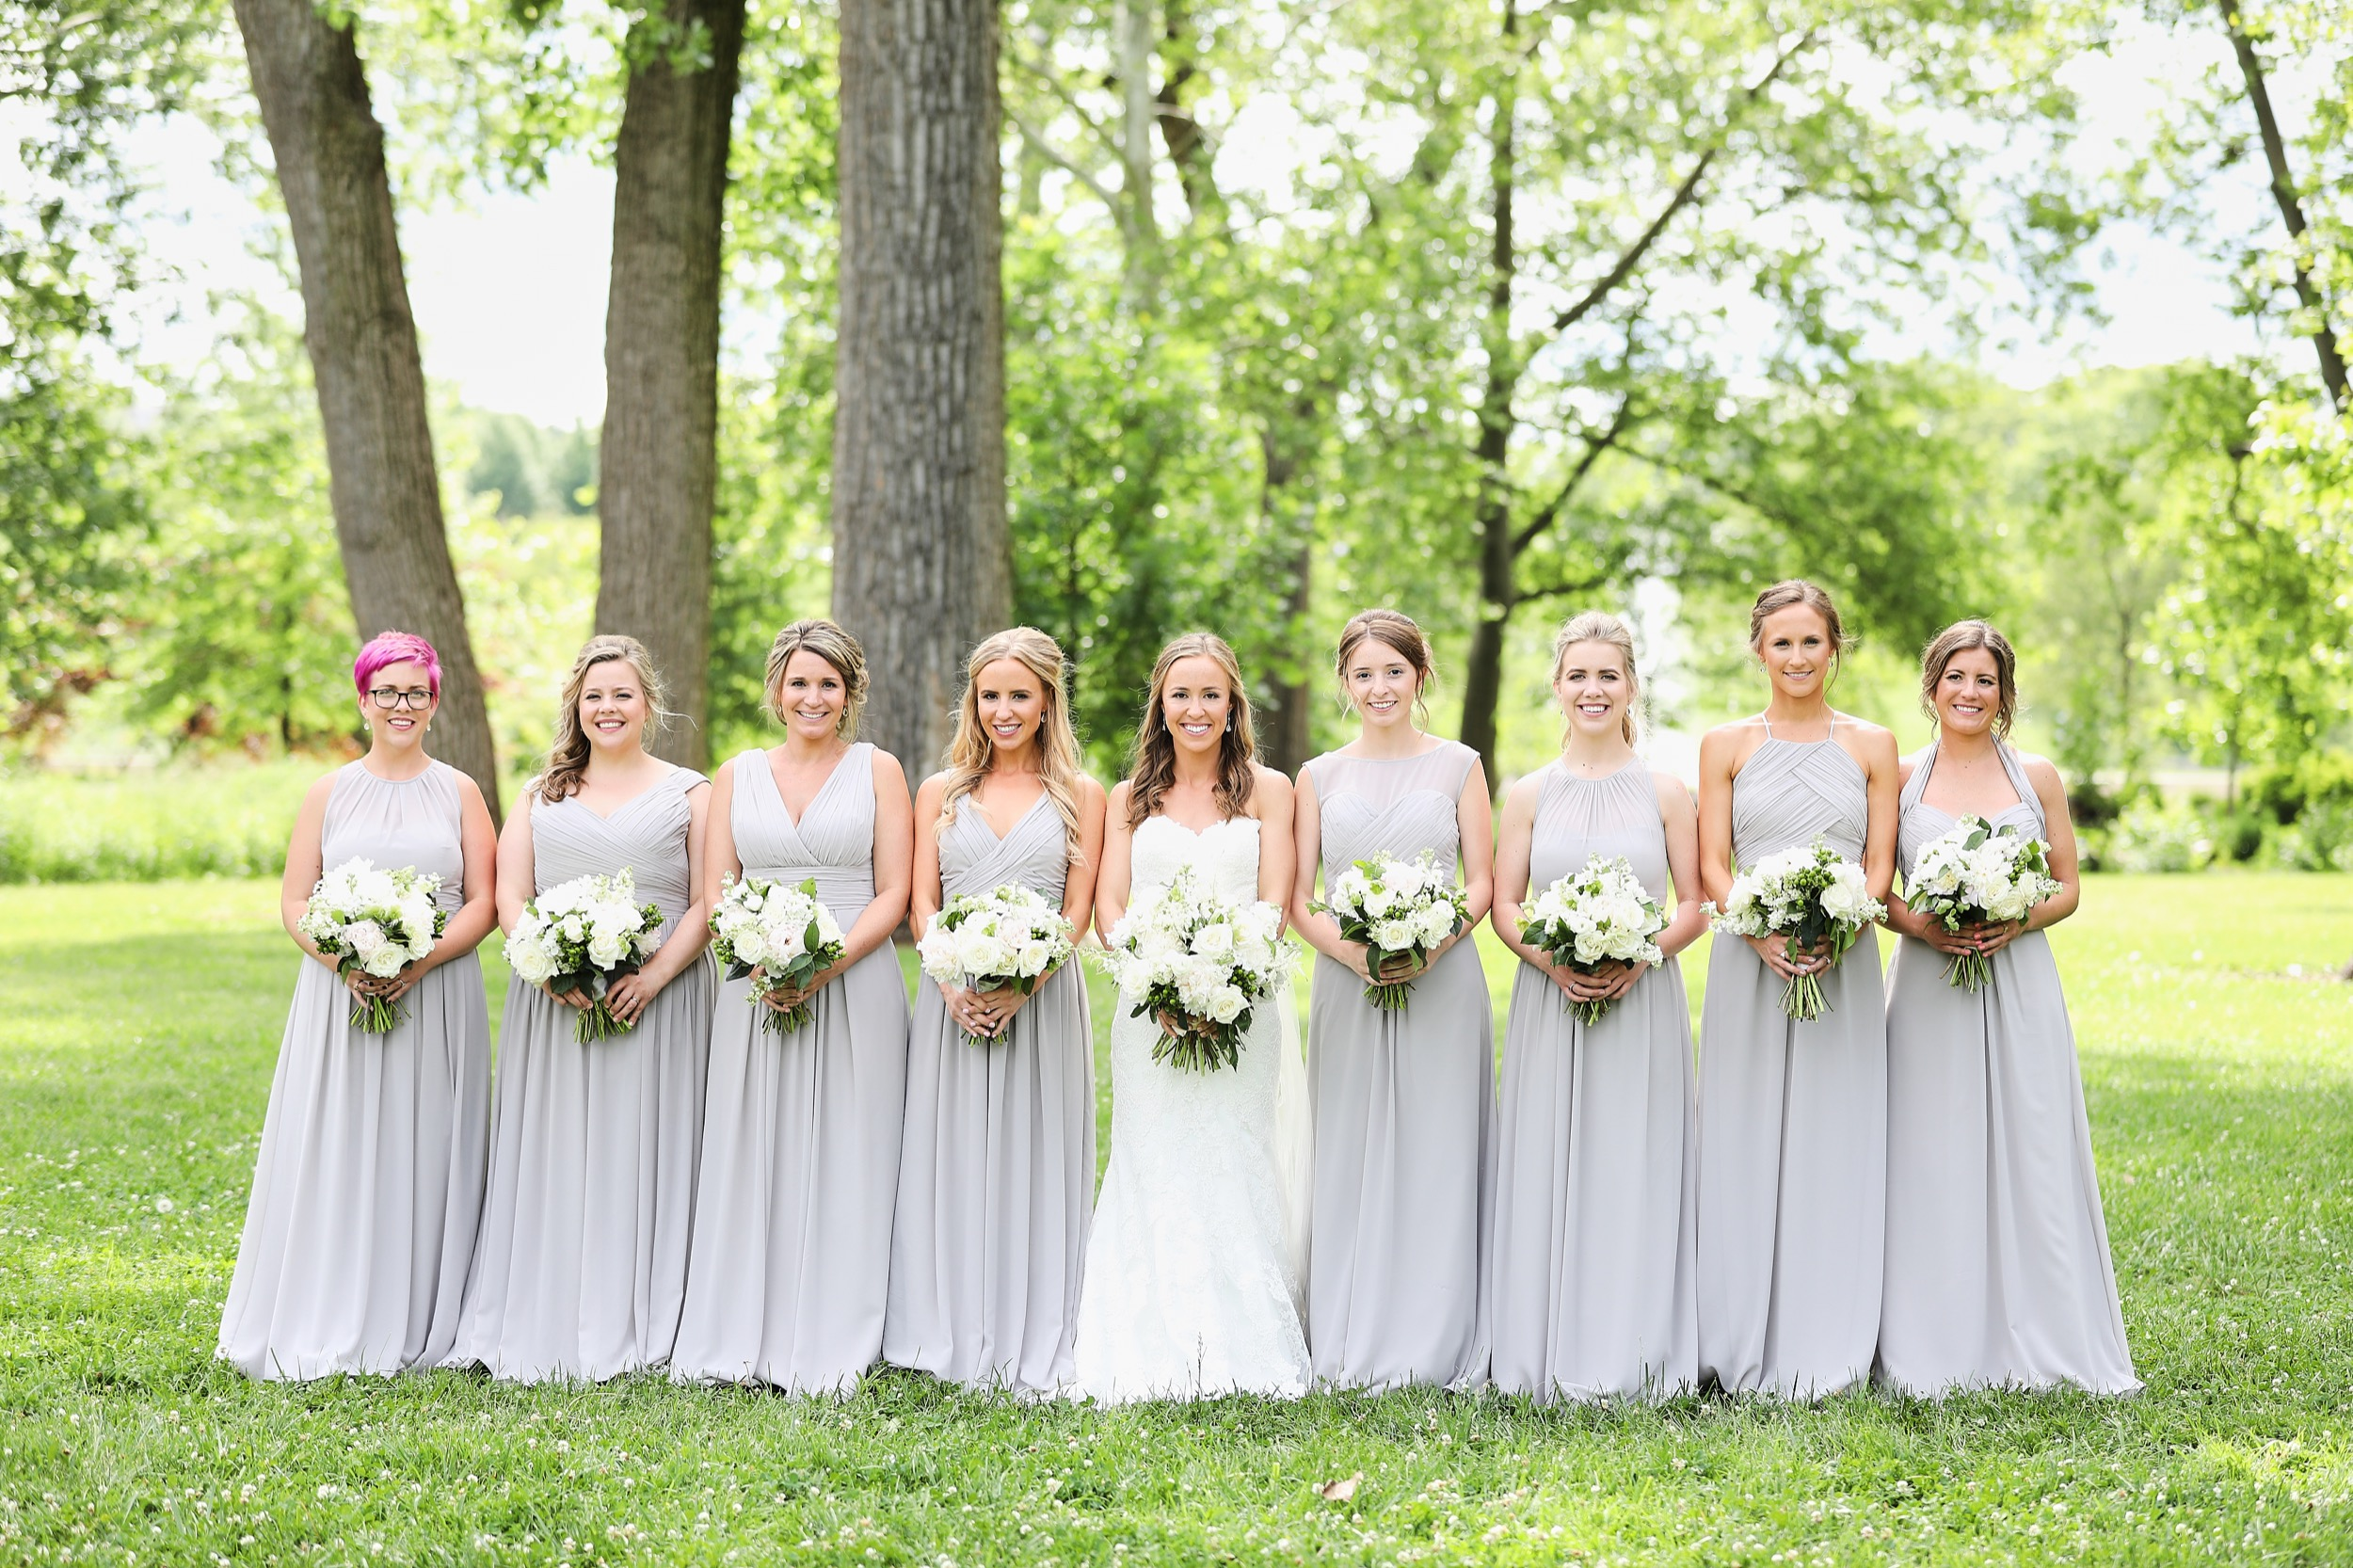 St Ambrose Wedding and Worlds Fair Pavilion Reception in Forest Park Photographs by St Louis Wedding Photographers Oldani Photography